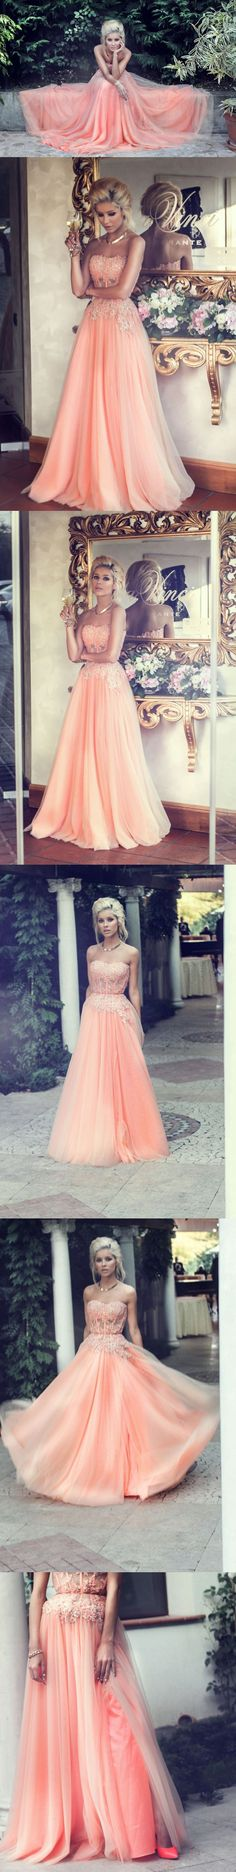 New fashion girls party dresses beaded bodice off shoulder long prom dresses evening gown #promdress prom dress #promdress /prom-dresses-us63_1